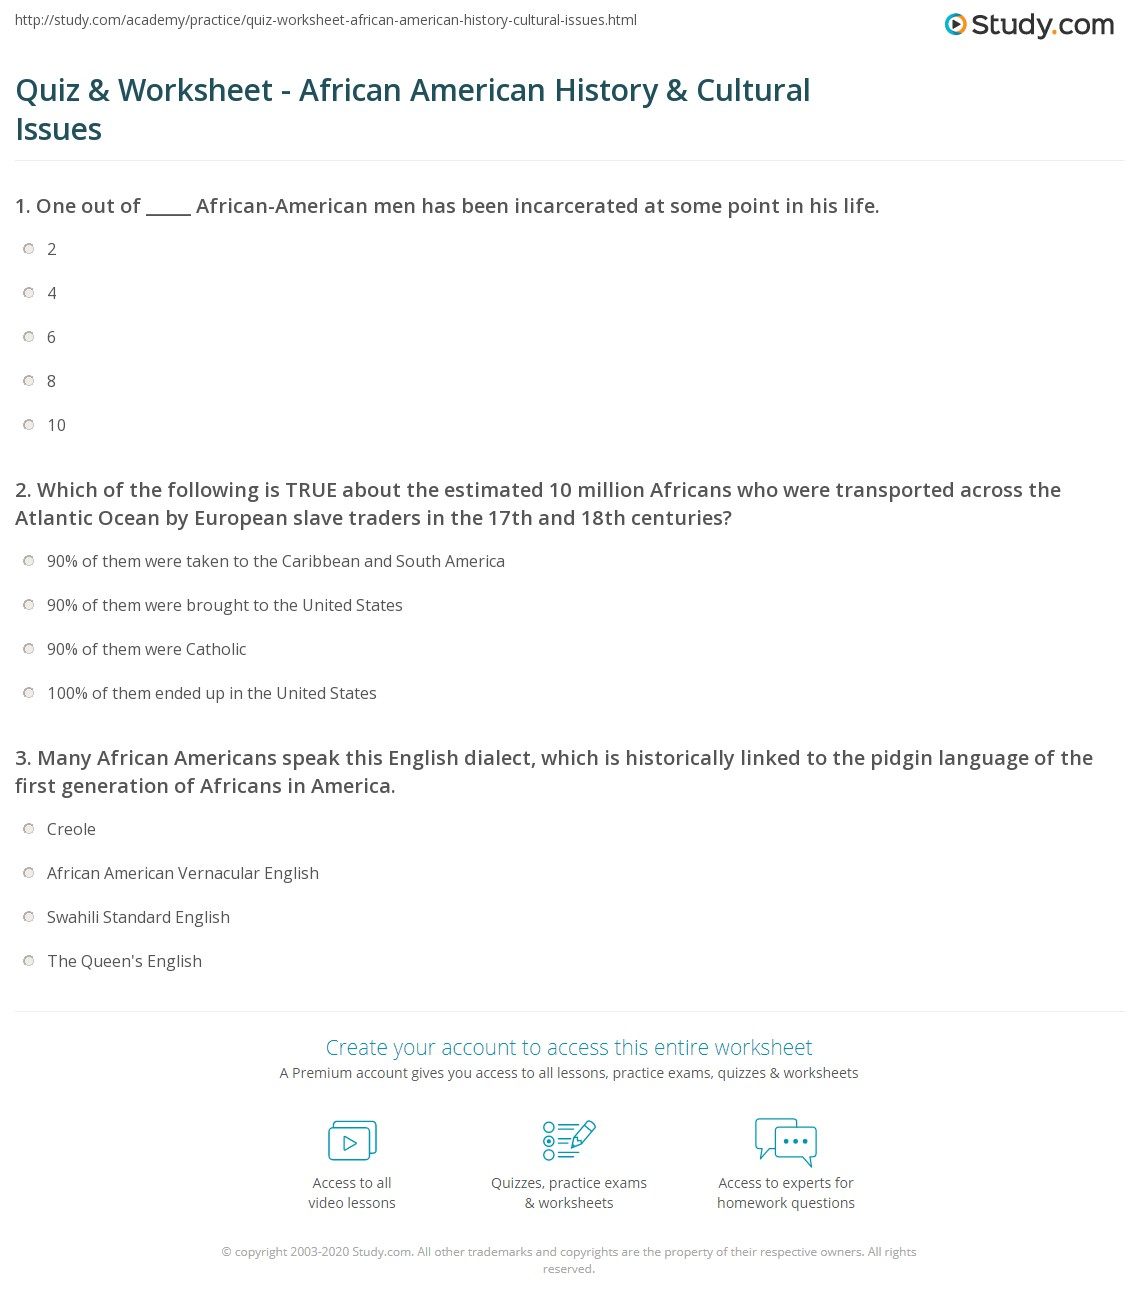 history worksheets School history is a growing library of premium quality history worksheets, teaching resources and online history courses for use in the classroom safe & secure we pride ourselves on being a safe website for both teachers and students.